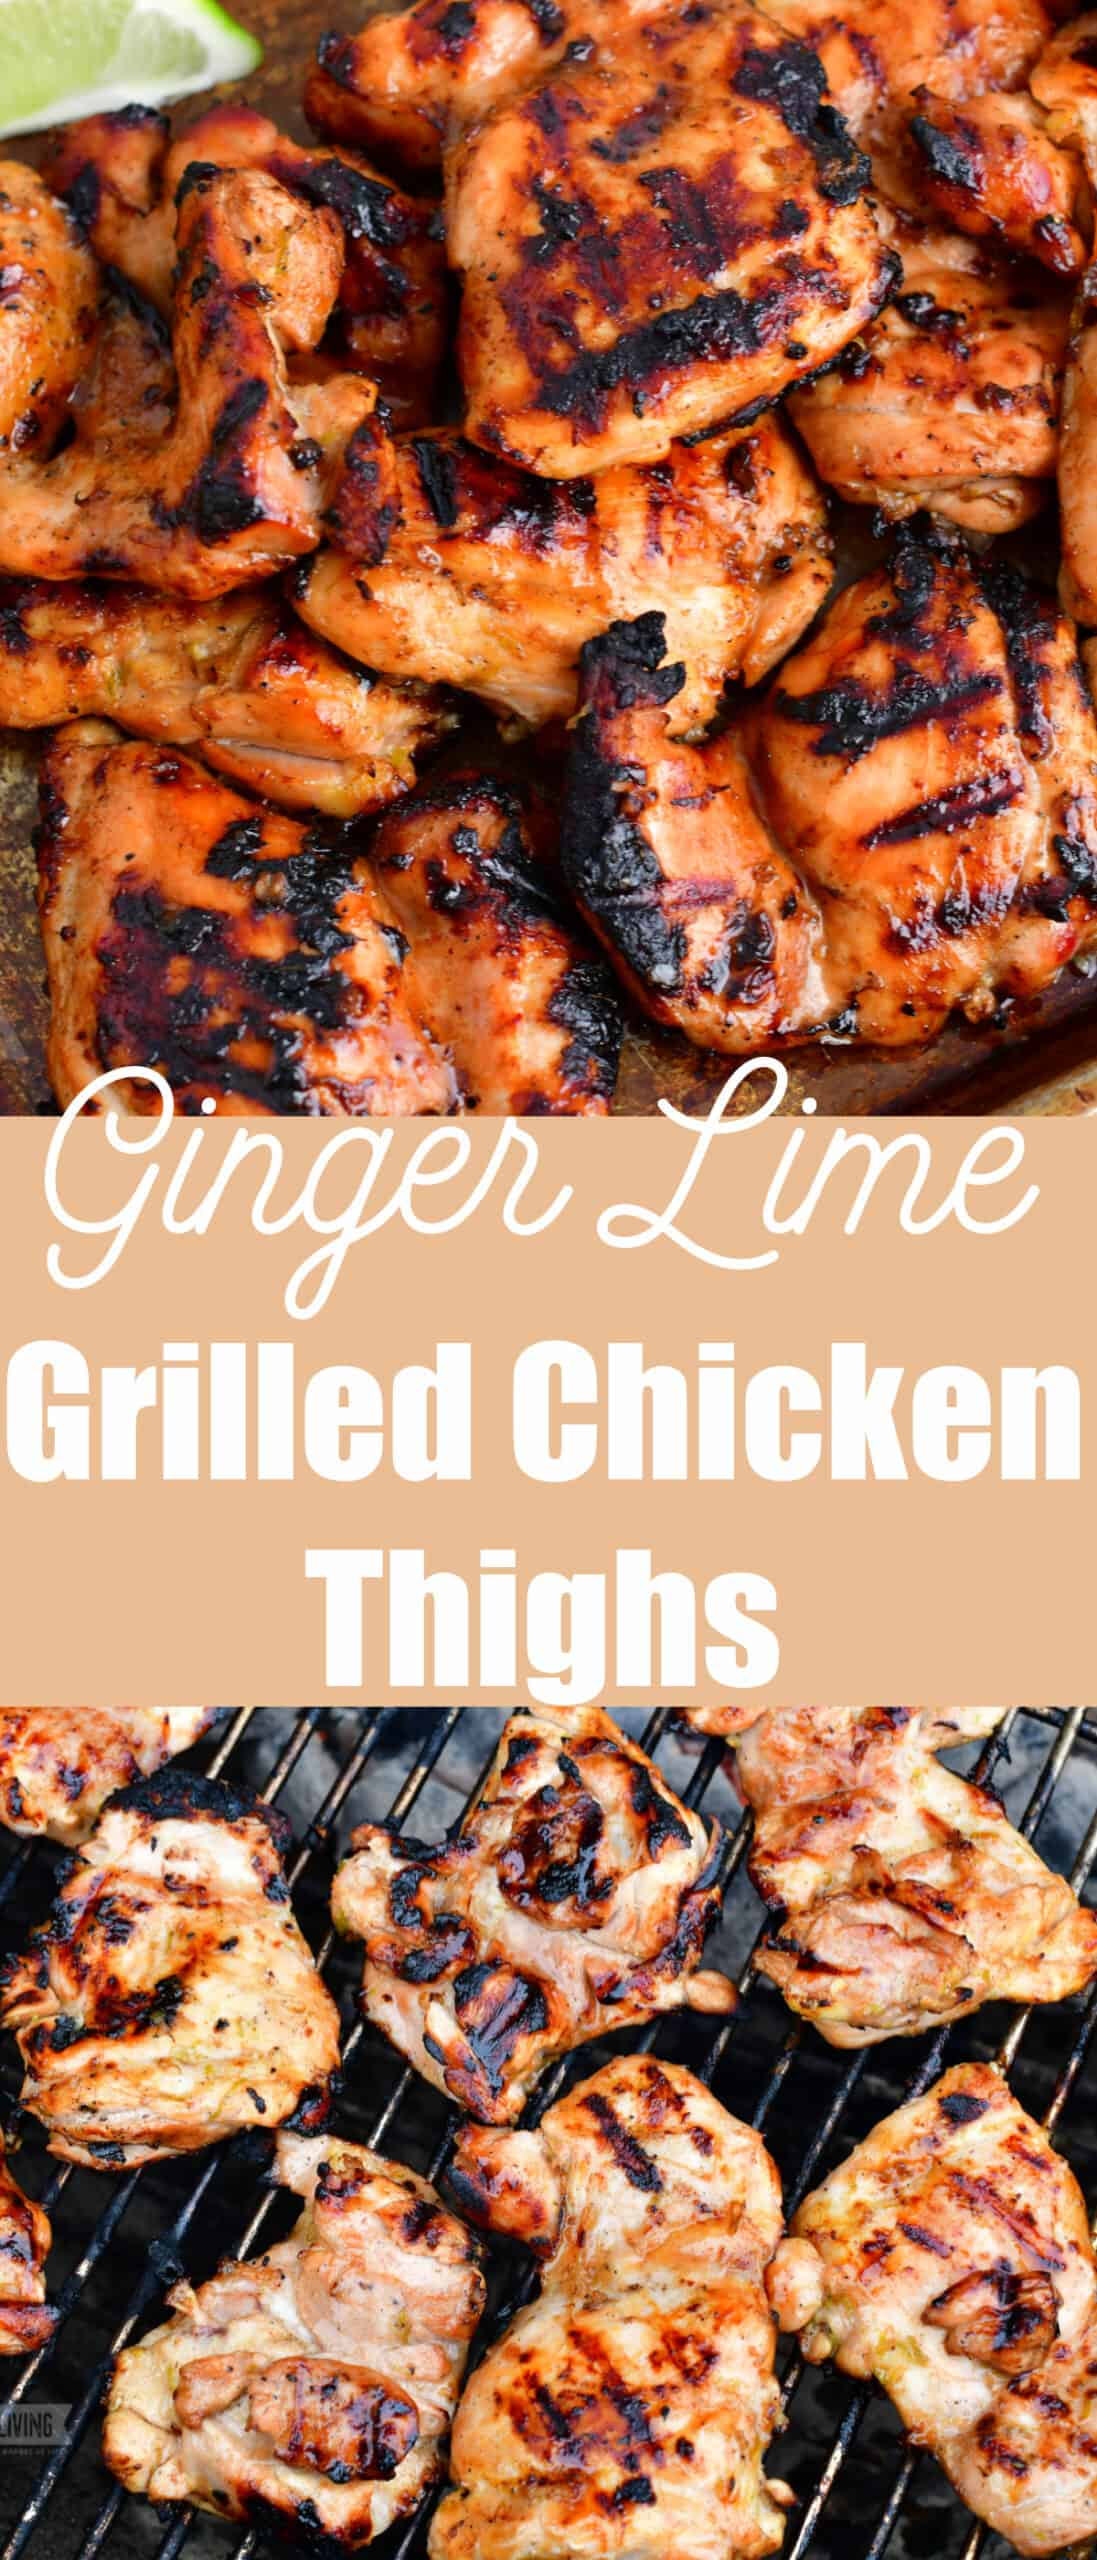 title collage of two images of grilled chicken and chicken on the grill grate